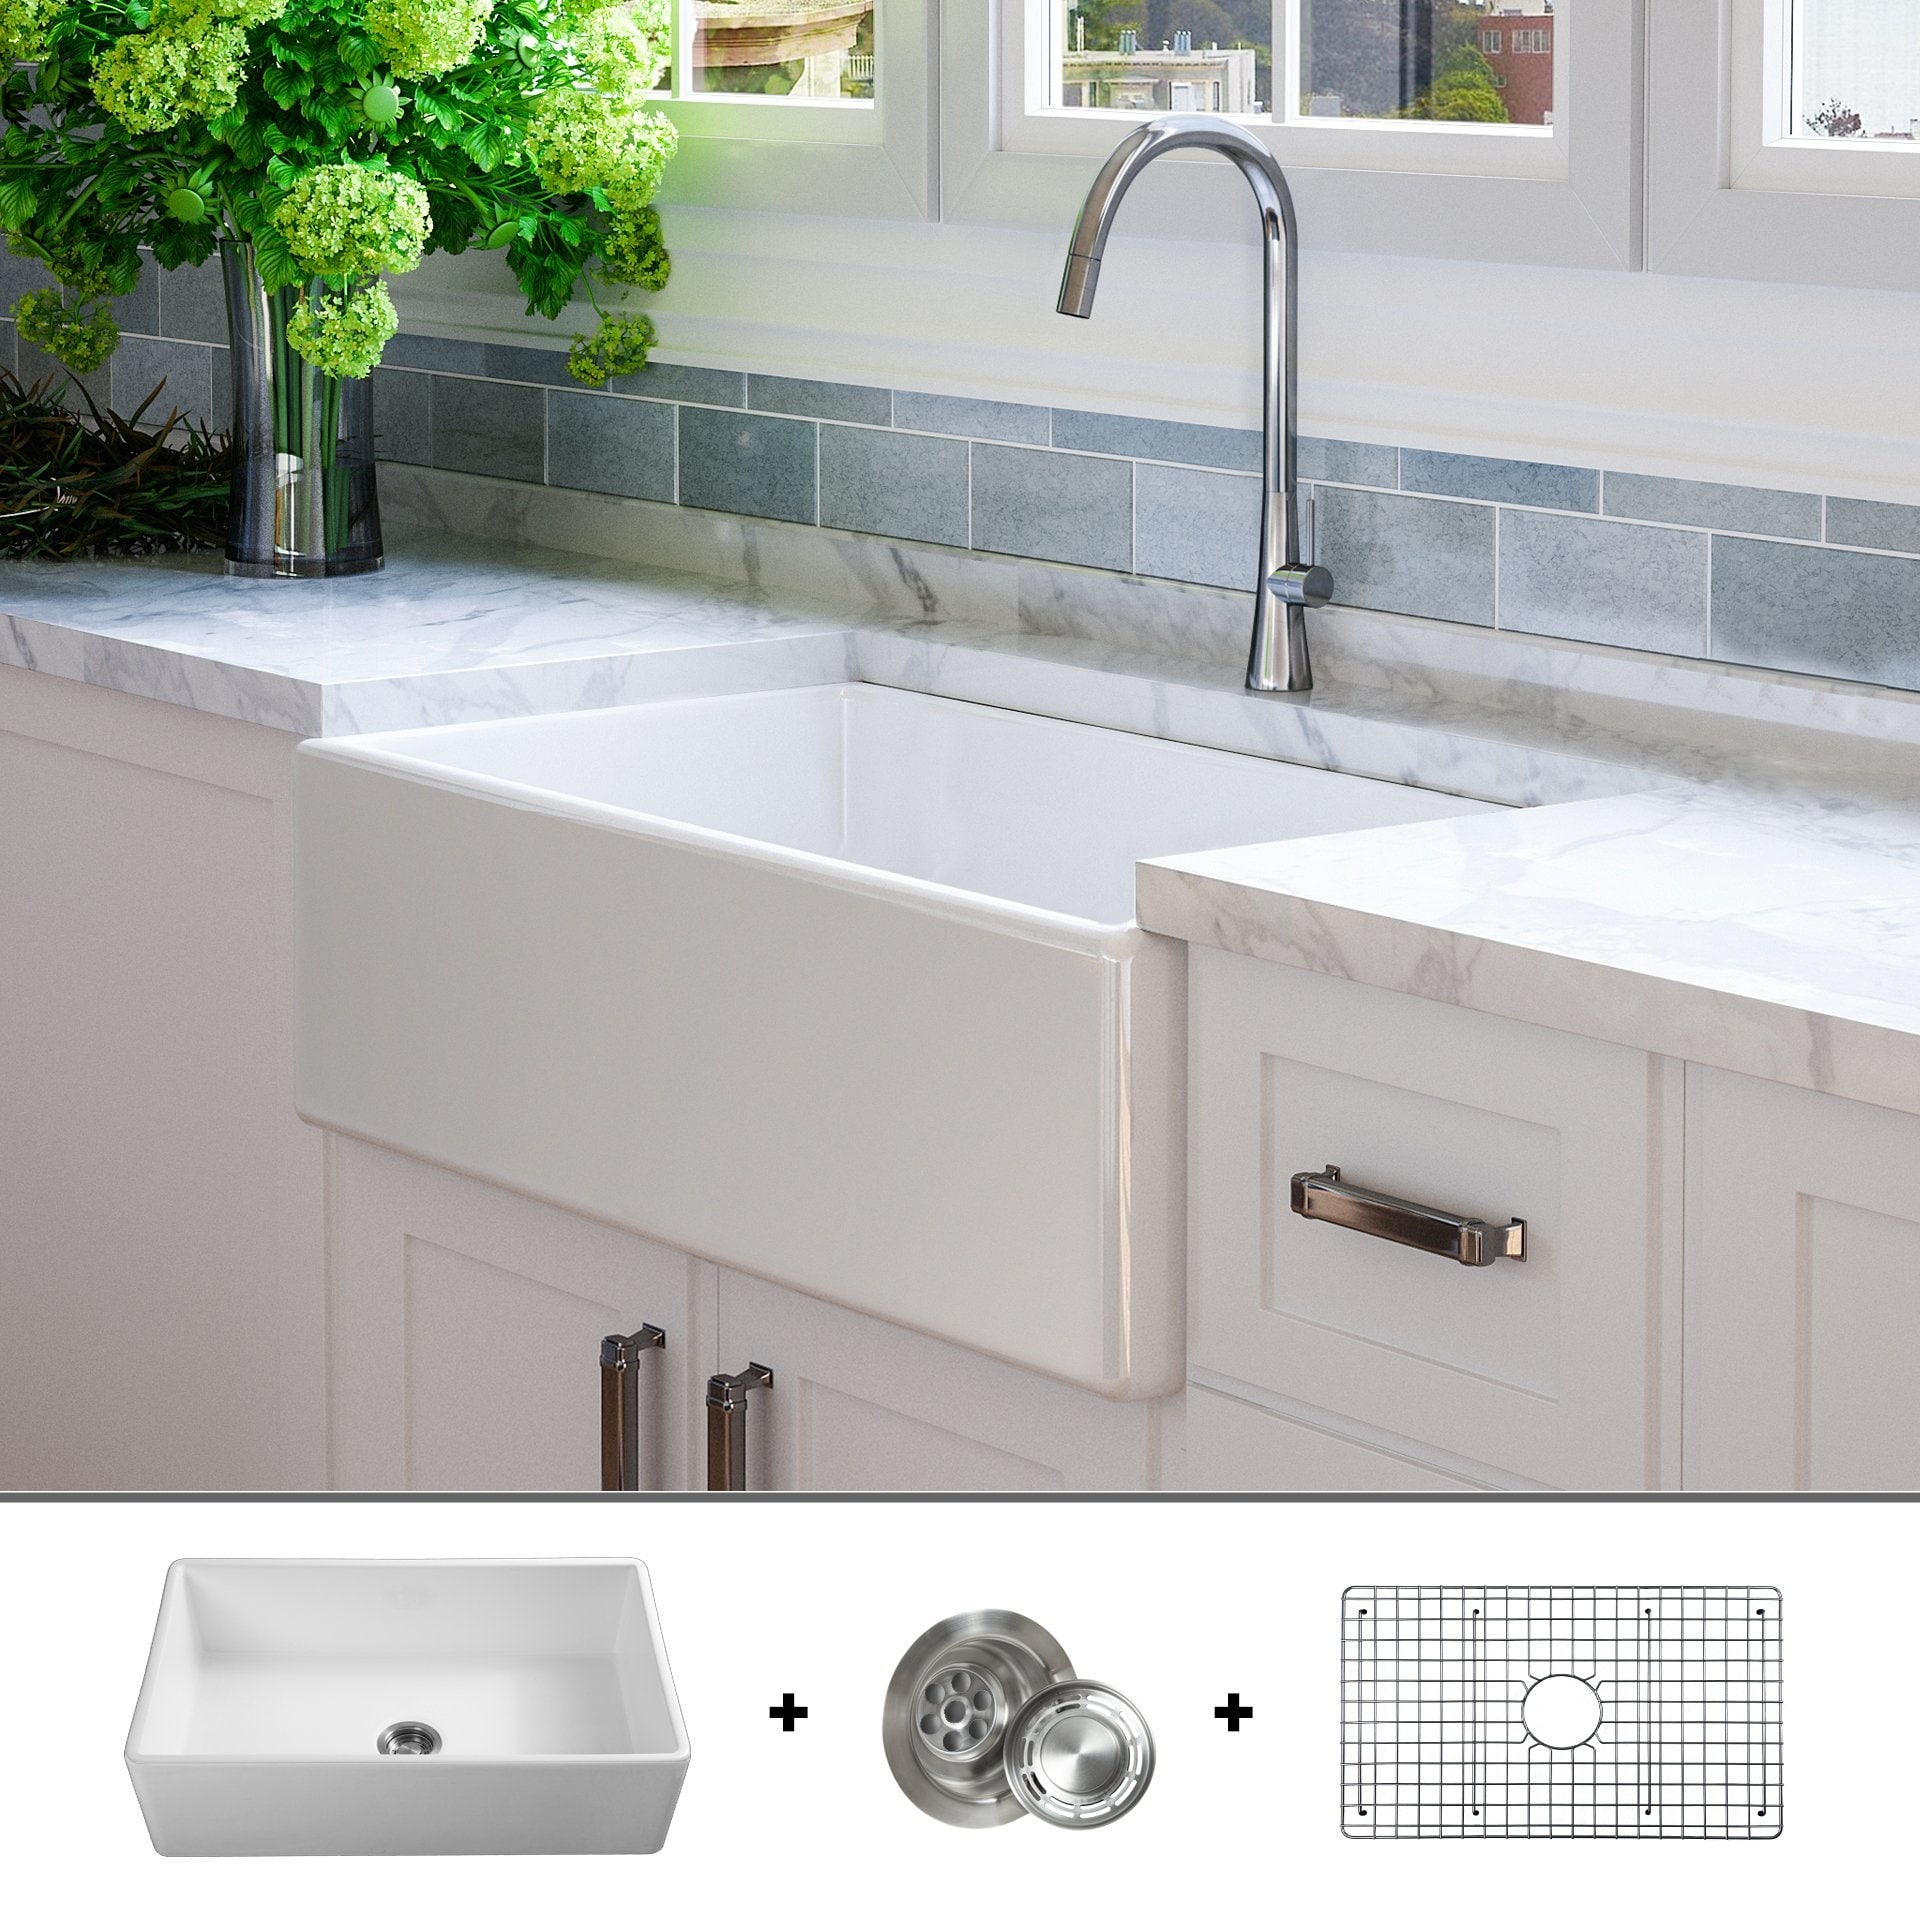 luxury 33 inch modern fireclay farmhouse kitchen sink single bowl white flat front includes drain grid by fossil blu